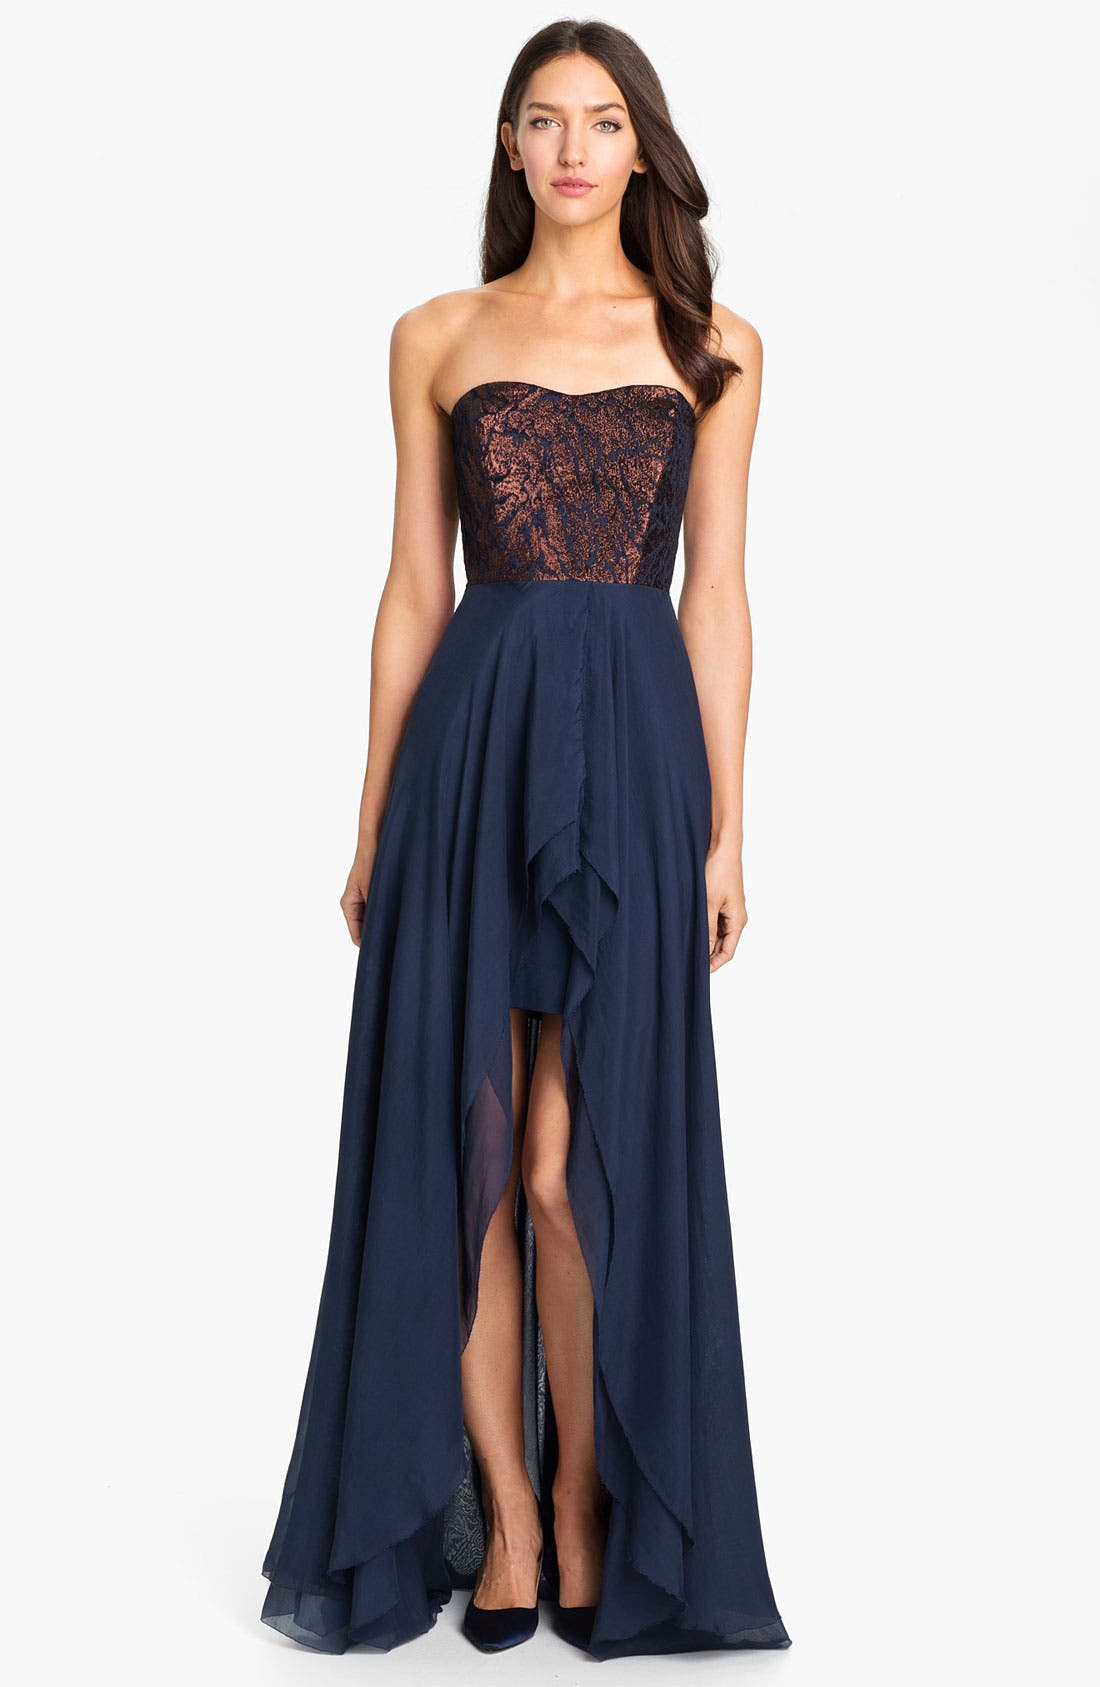 Main Image - Nicole Miller Strapless Jacquard Bodice High/Low Silk Gown